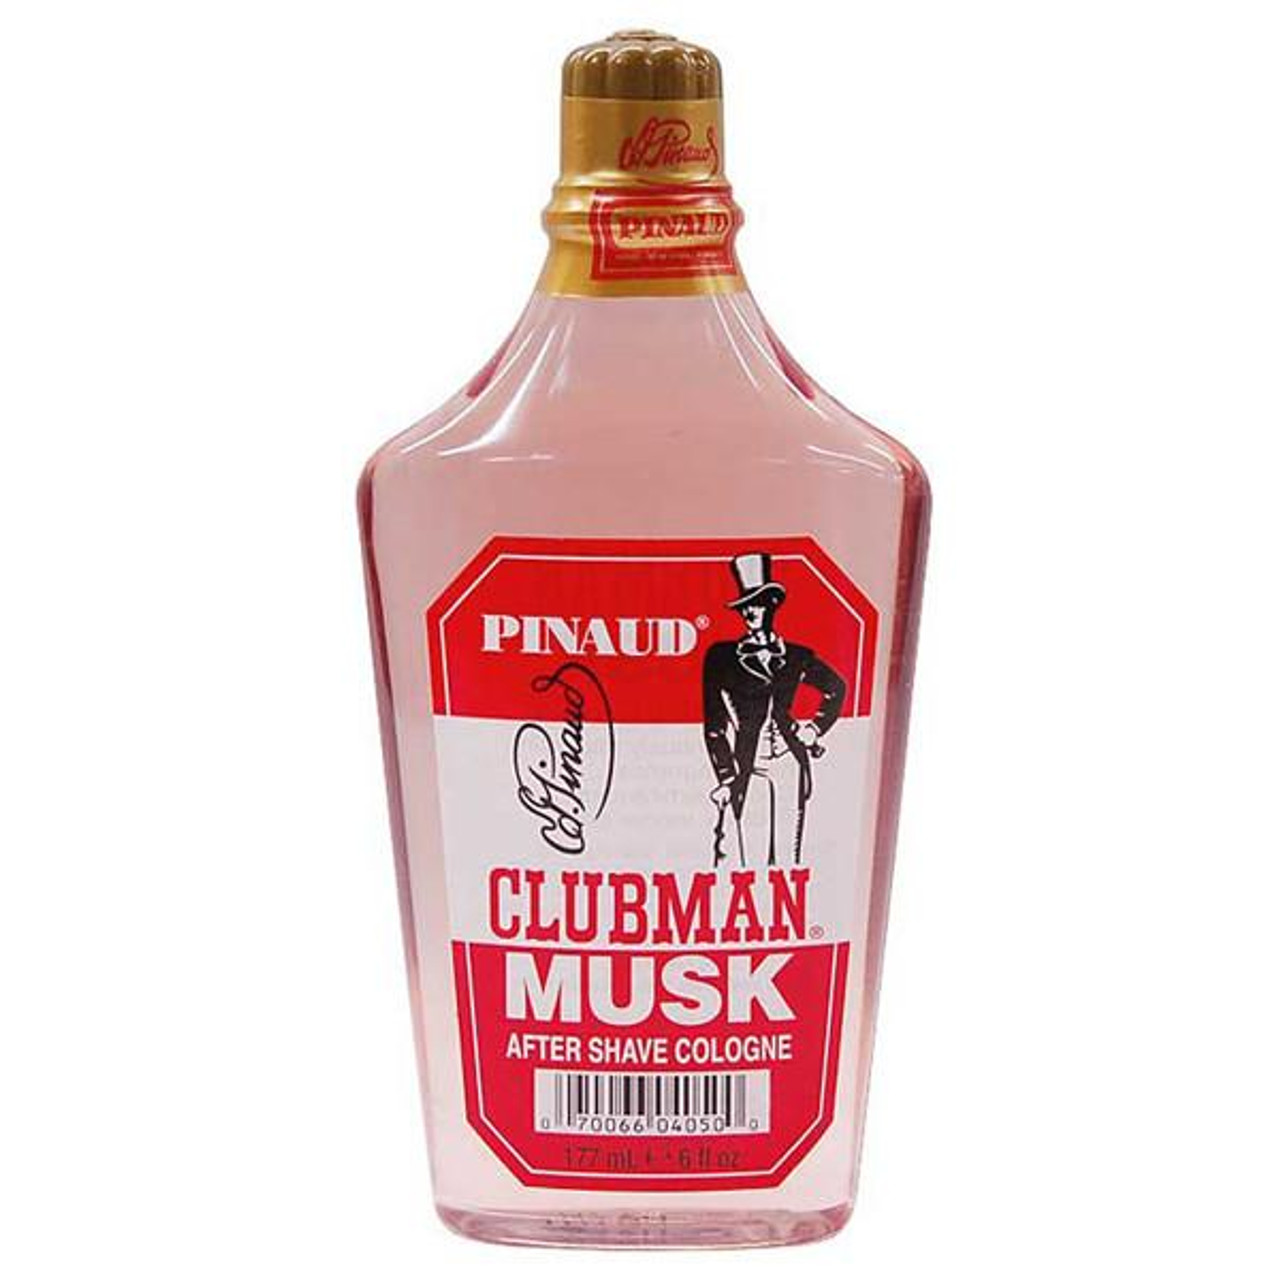 Clubman Musk After Shave Cologne 6oz